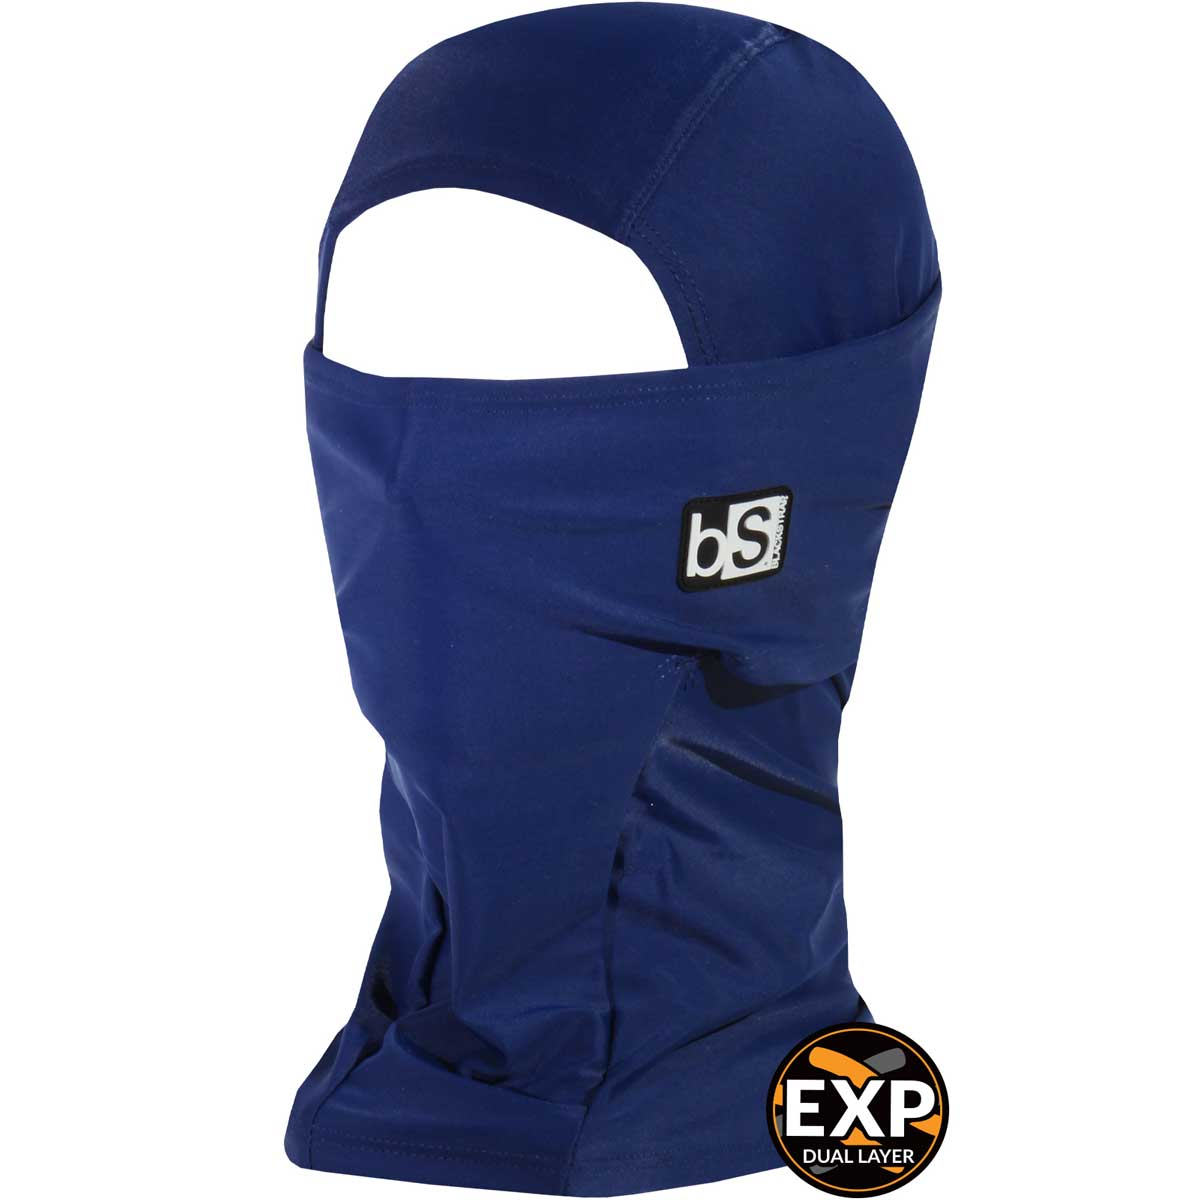 BlackStrap Expedition Hood in Navy